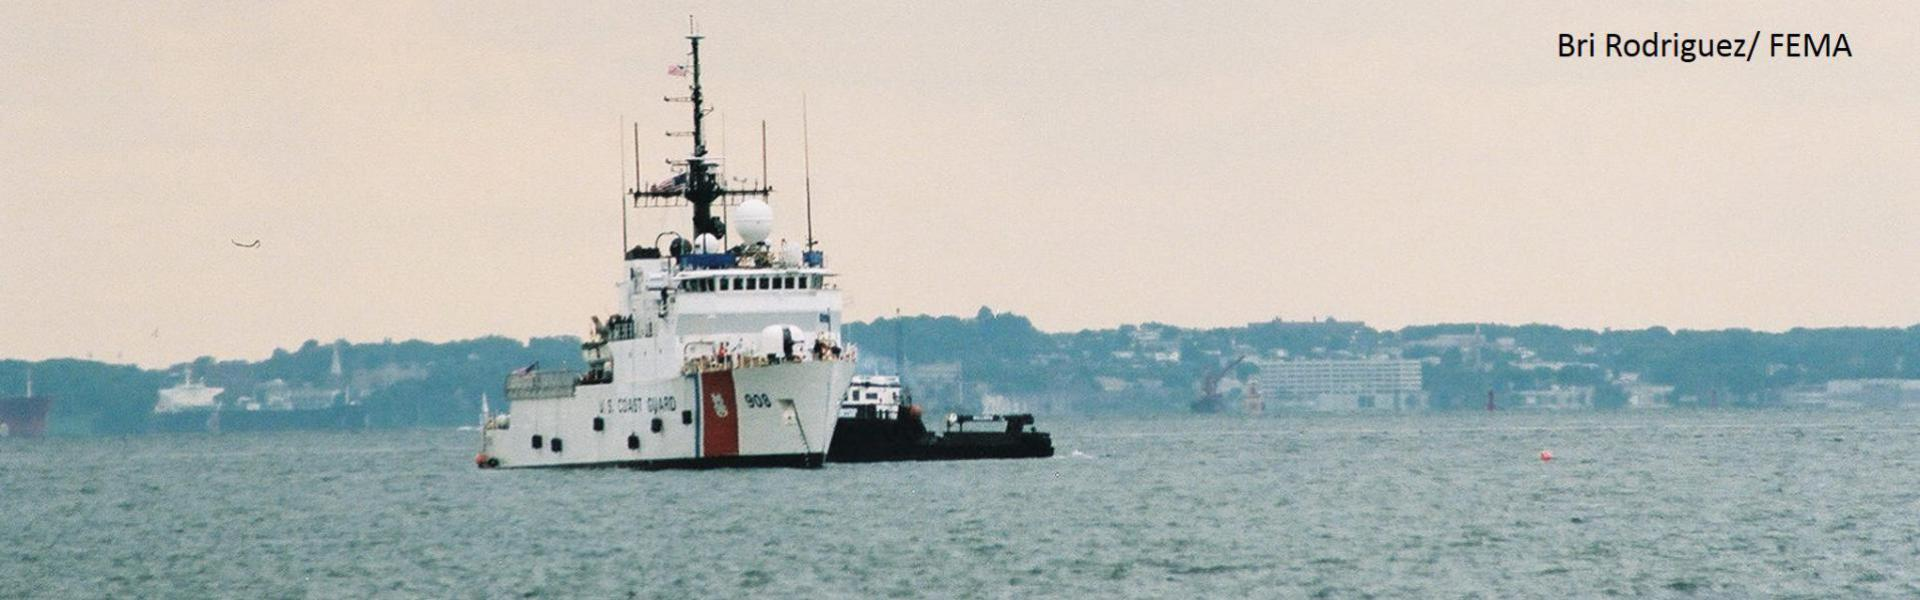 US Coast Guard ship on the water. Photo by Bri Rodriguez, FEMA